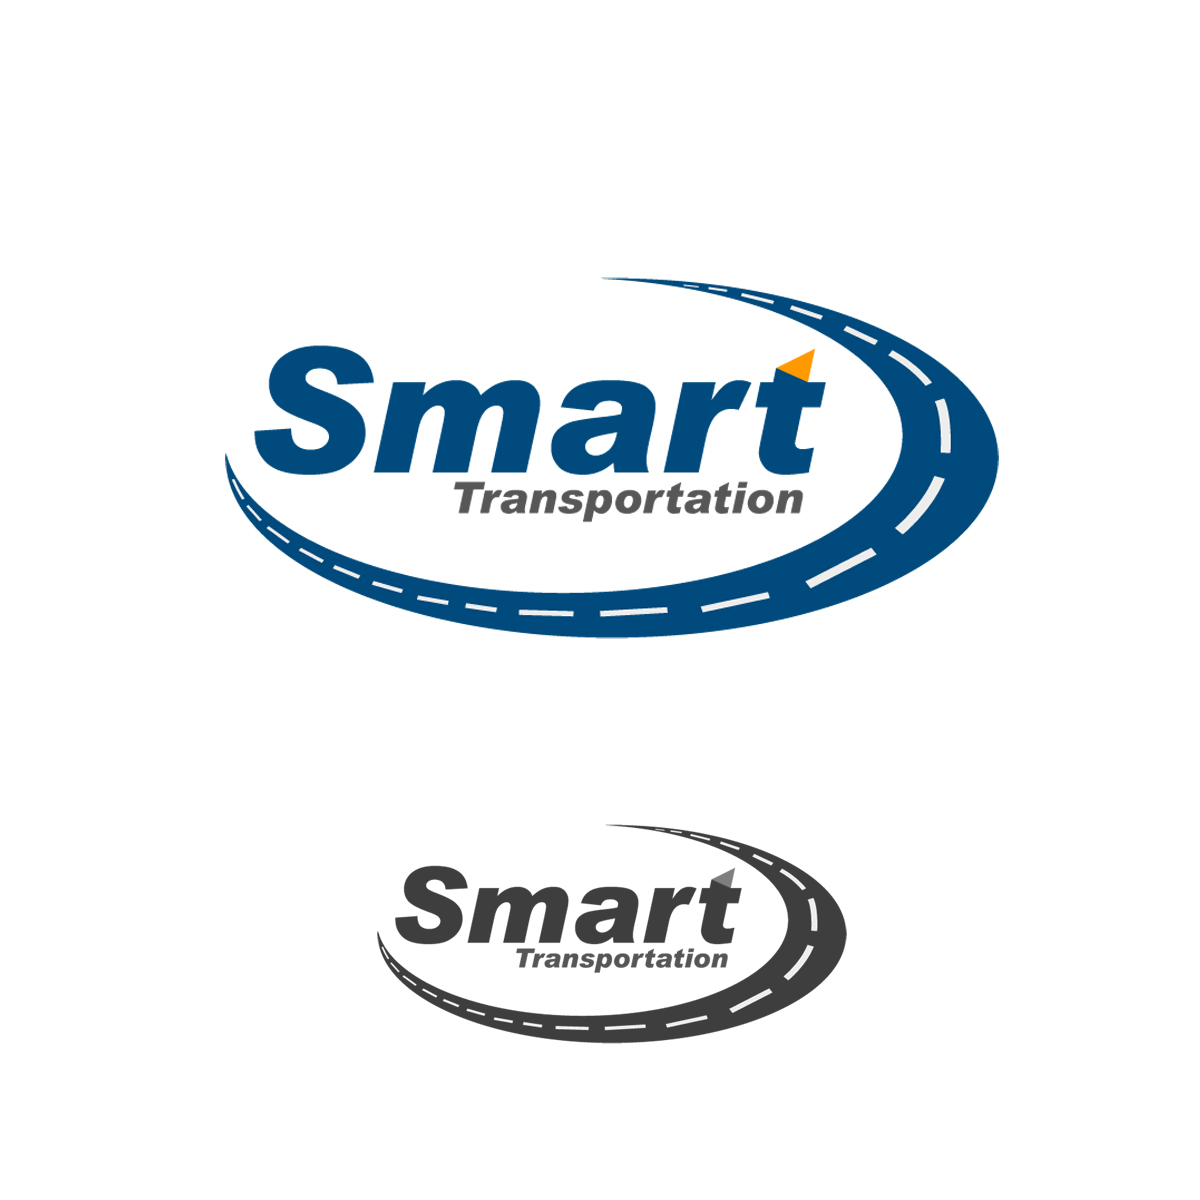 Logo Design by pixdesign - Entry No. 111 in the Logo Design Contest Imaginative Logo Design for Smart Transportation.